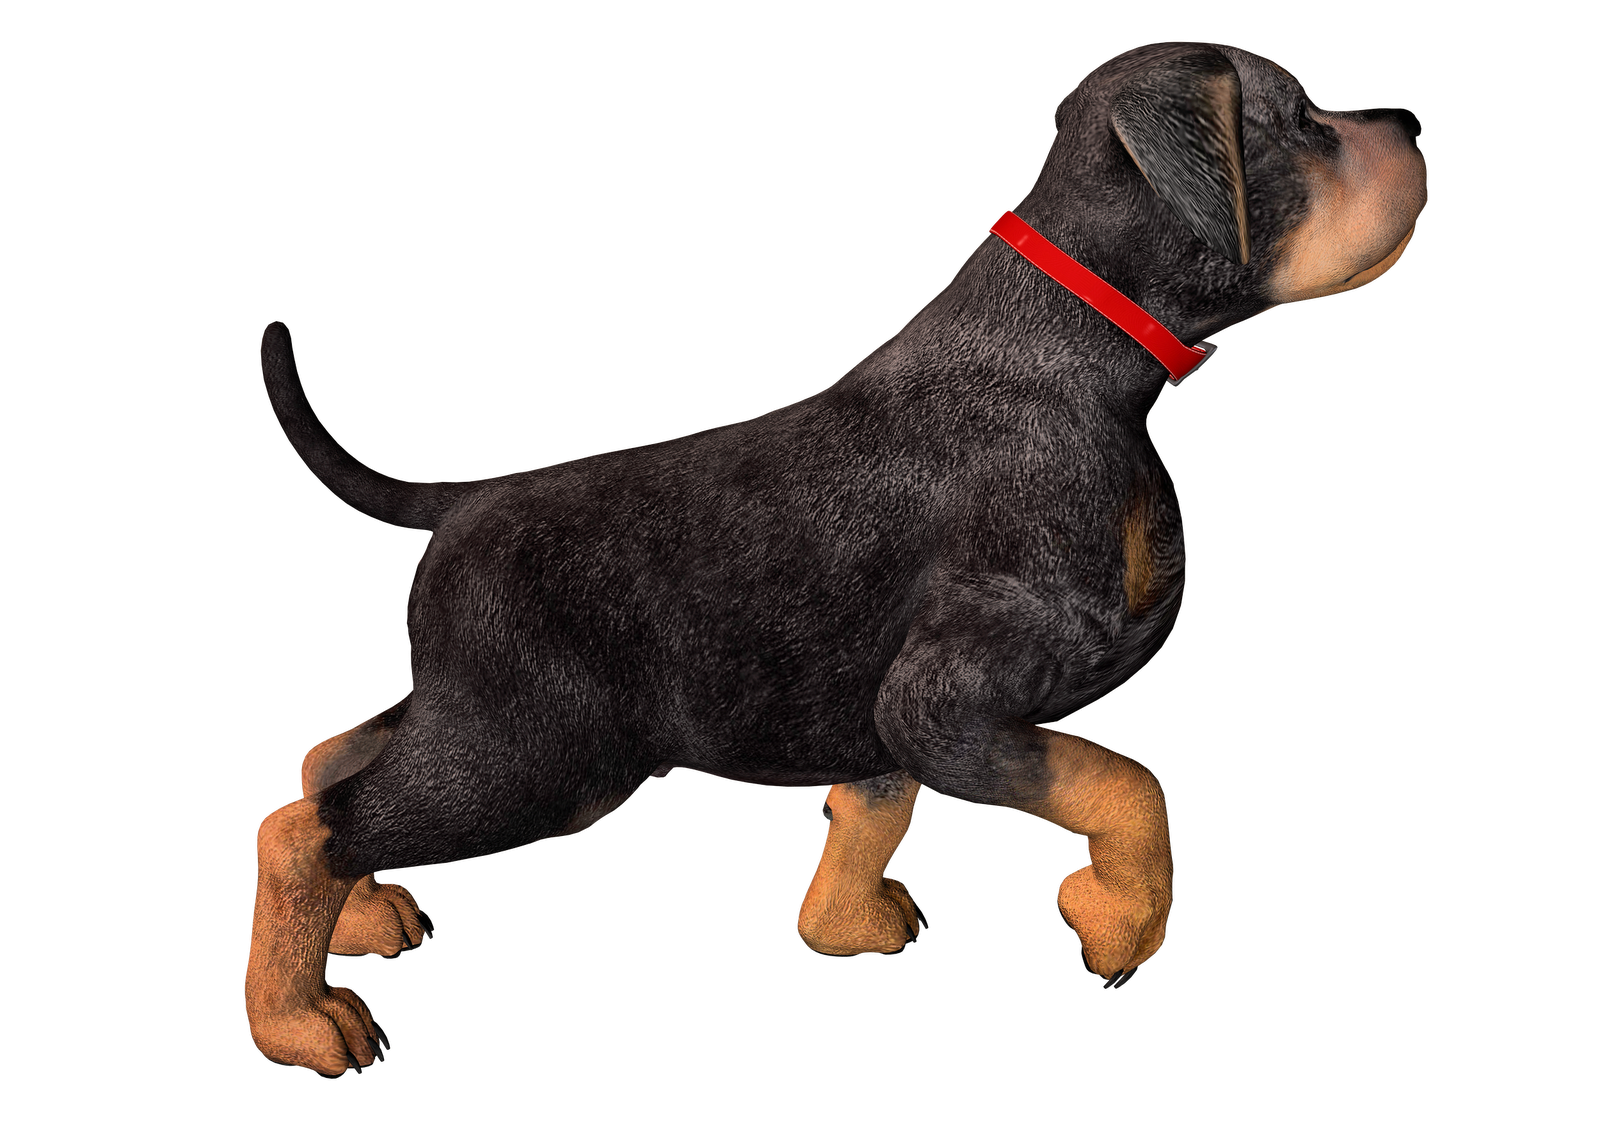 PNG HD Dogs - 123361